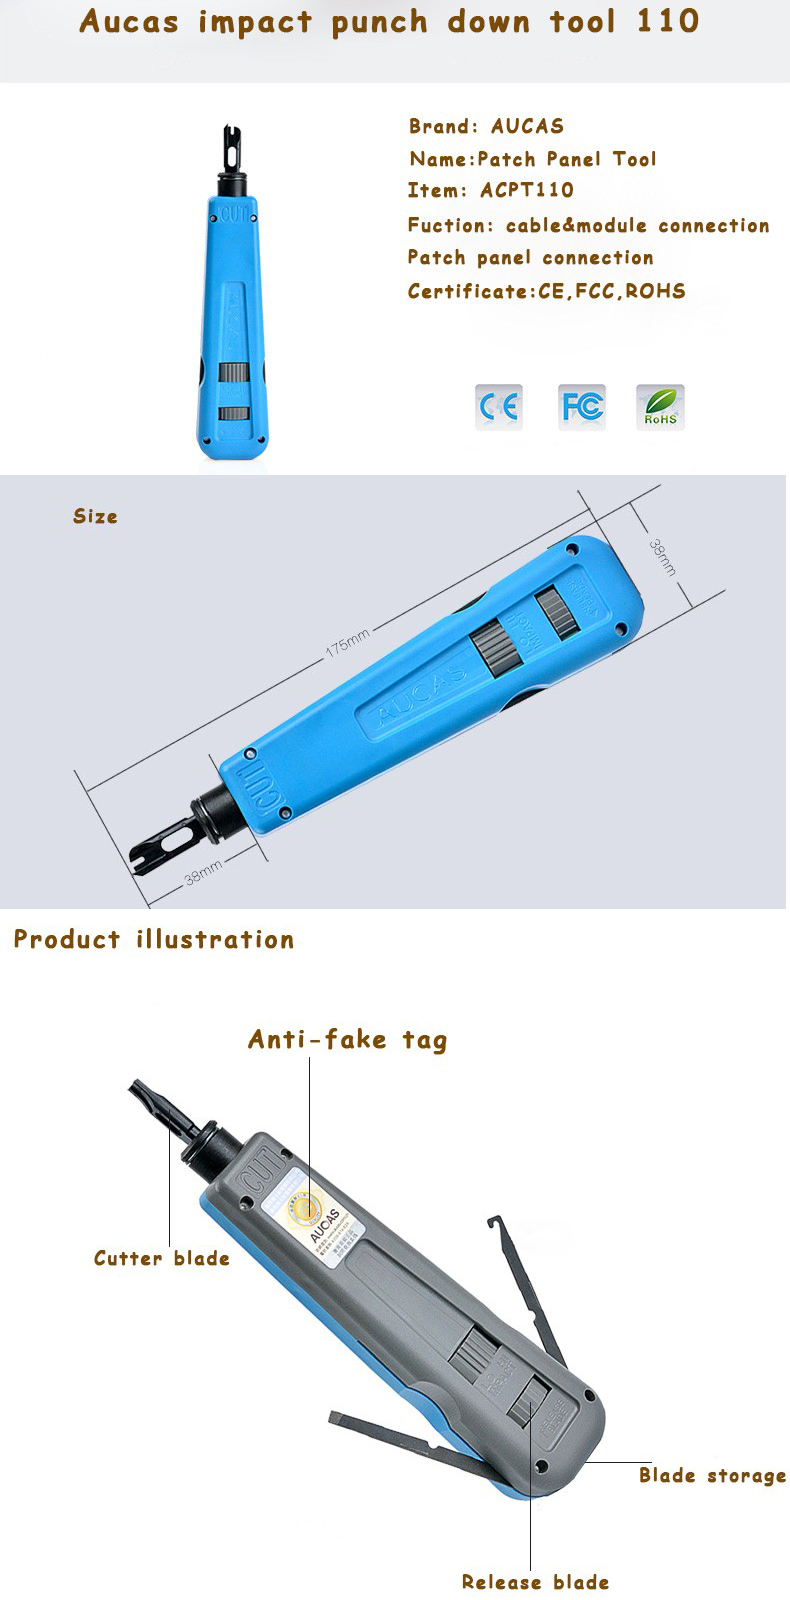 Aucas Network Cable Impact Krone Tool Module Block Insertion Punch Down Tool 110 Type Patch Panel Hookup Tool